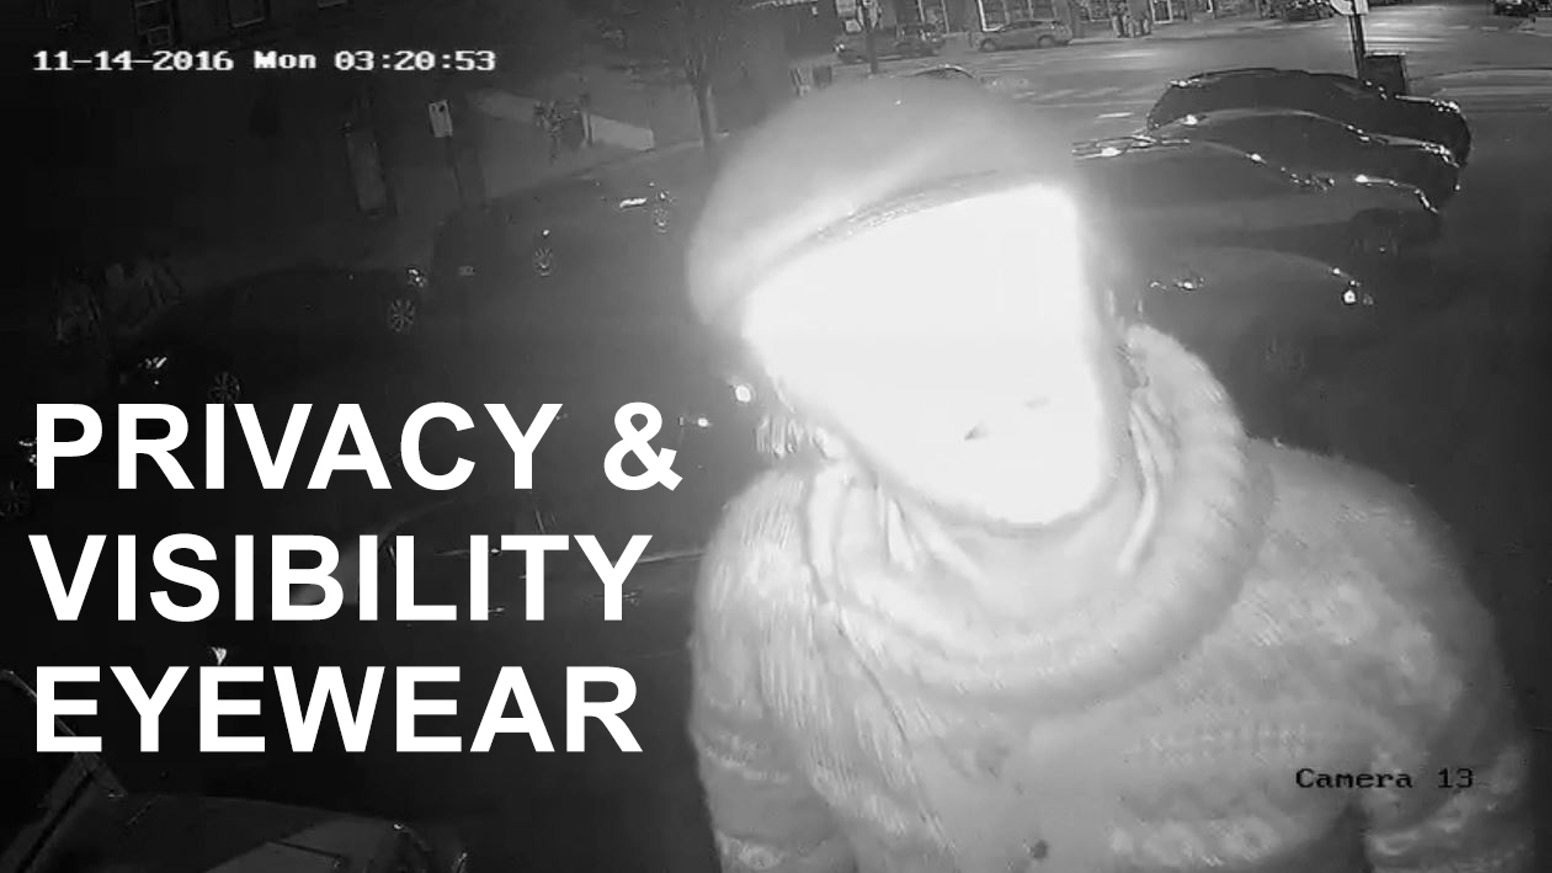 Maintain your privacy from surveillance cameras. Alert drivers of your presence while biking. Reflectacles make you seen and unseen!